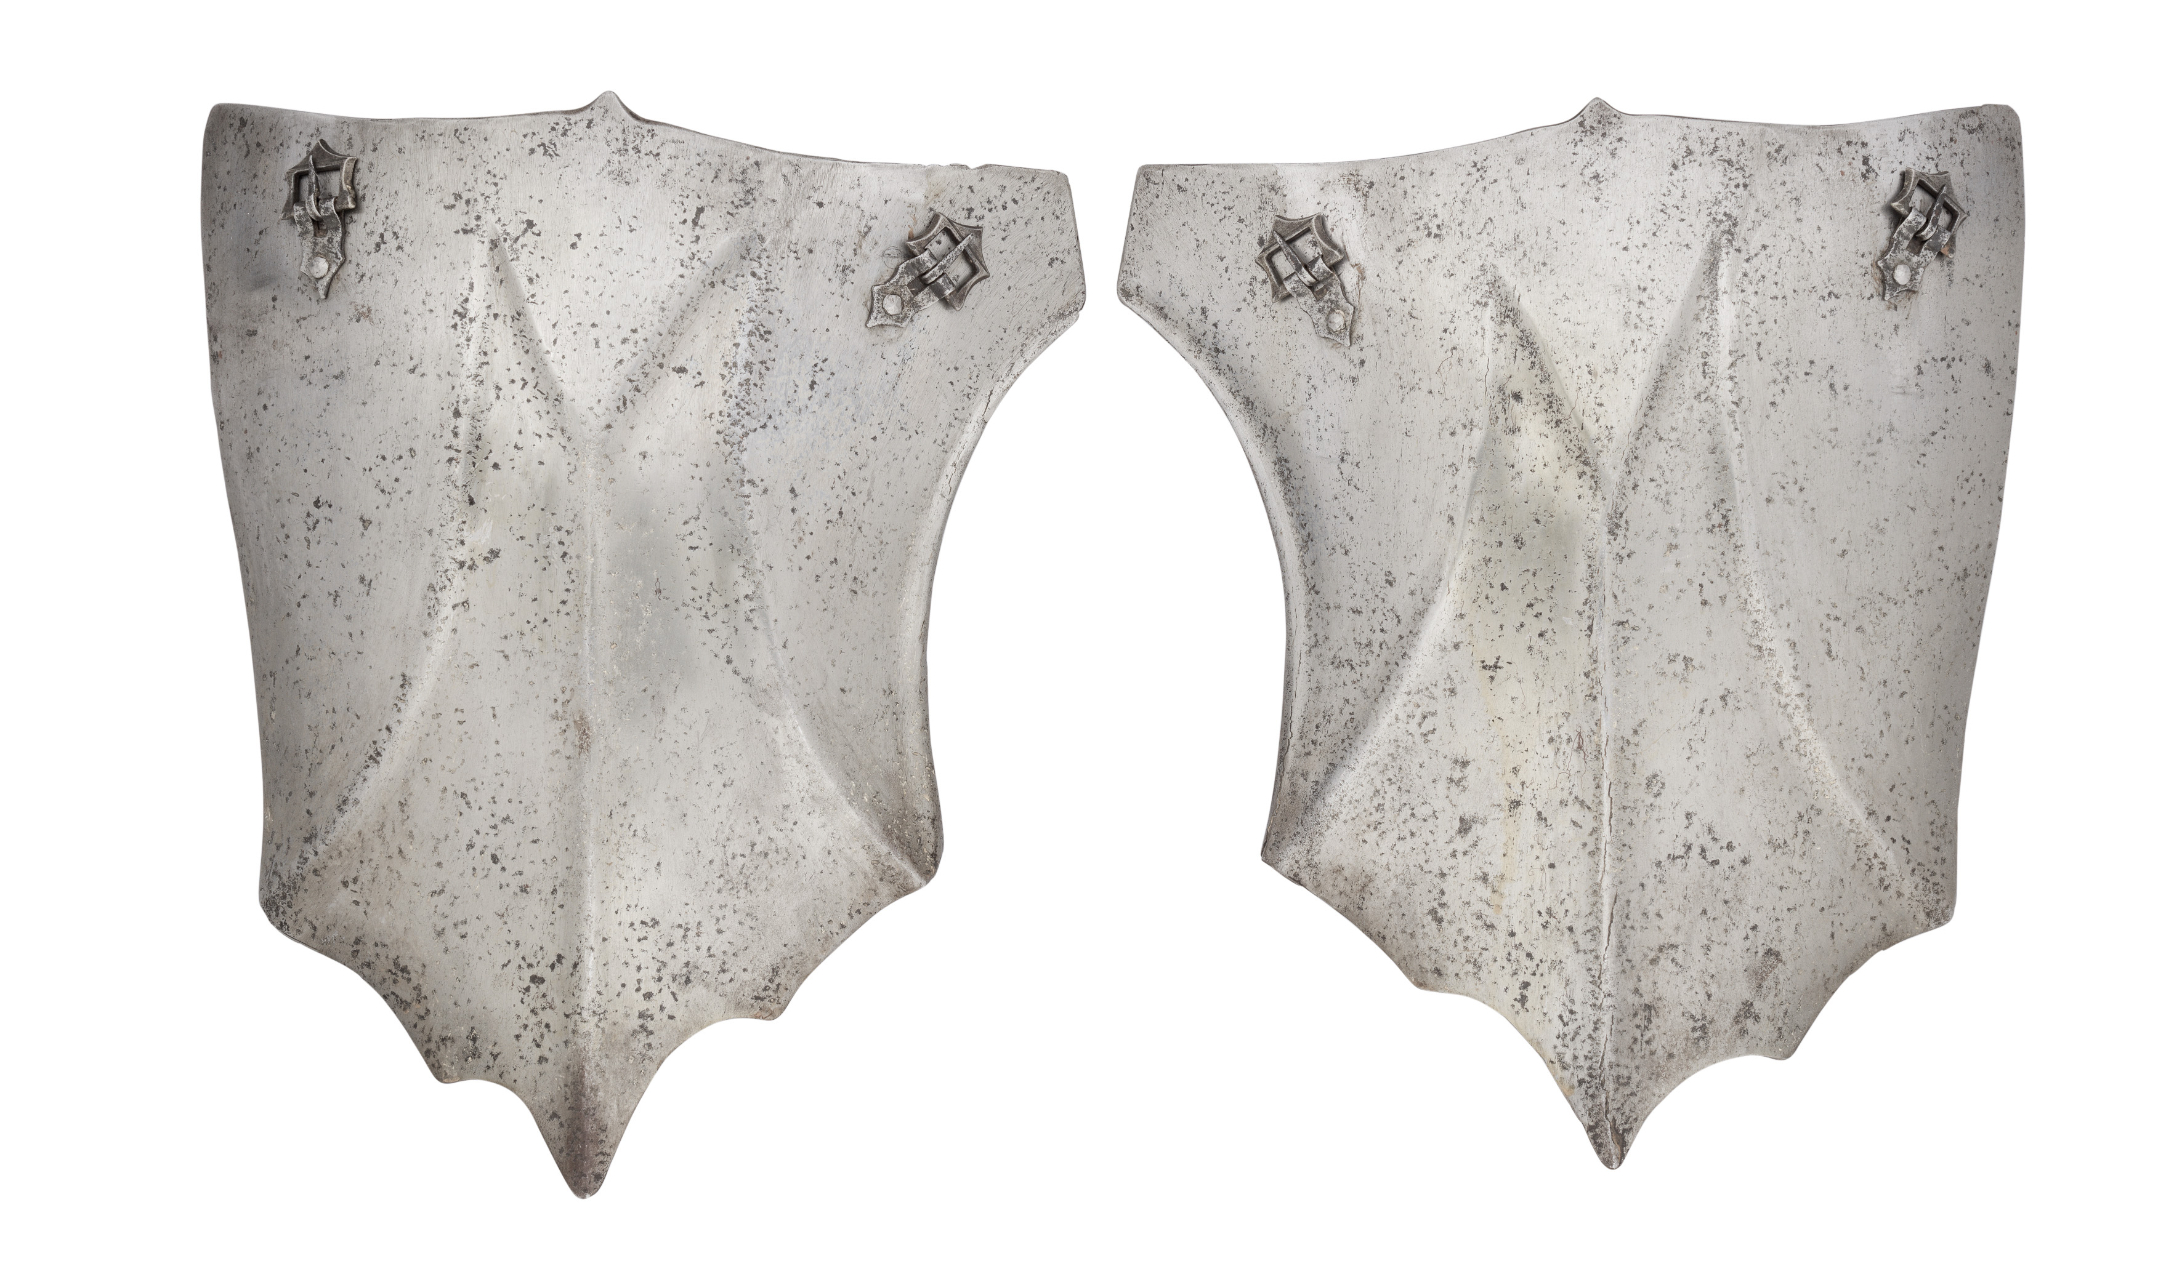 Ⓦ A PAIR OF TASSETS IN THE WESTERN EUROPEAN LATE 15TH CENTURY STYLE